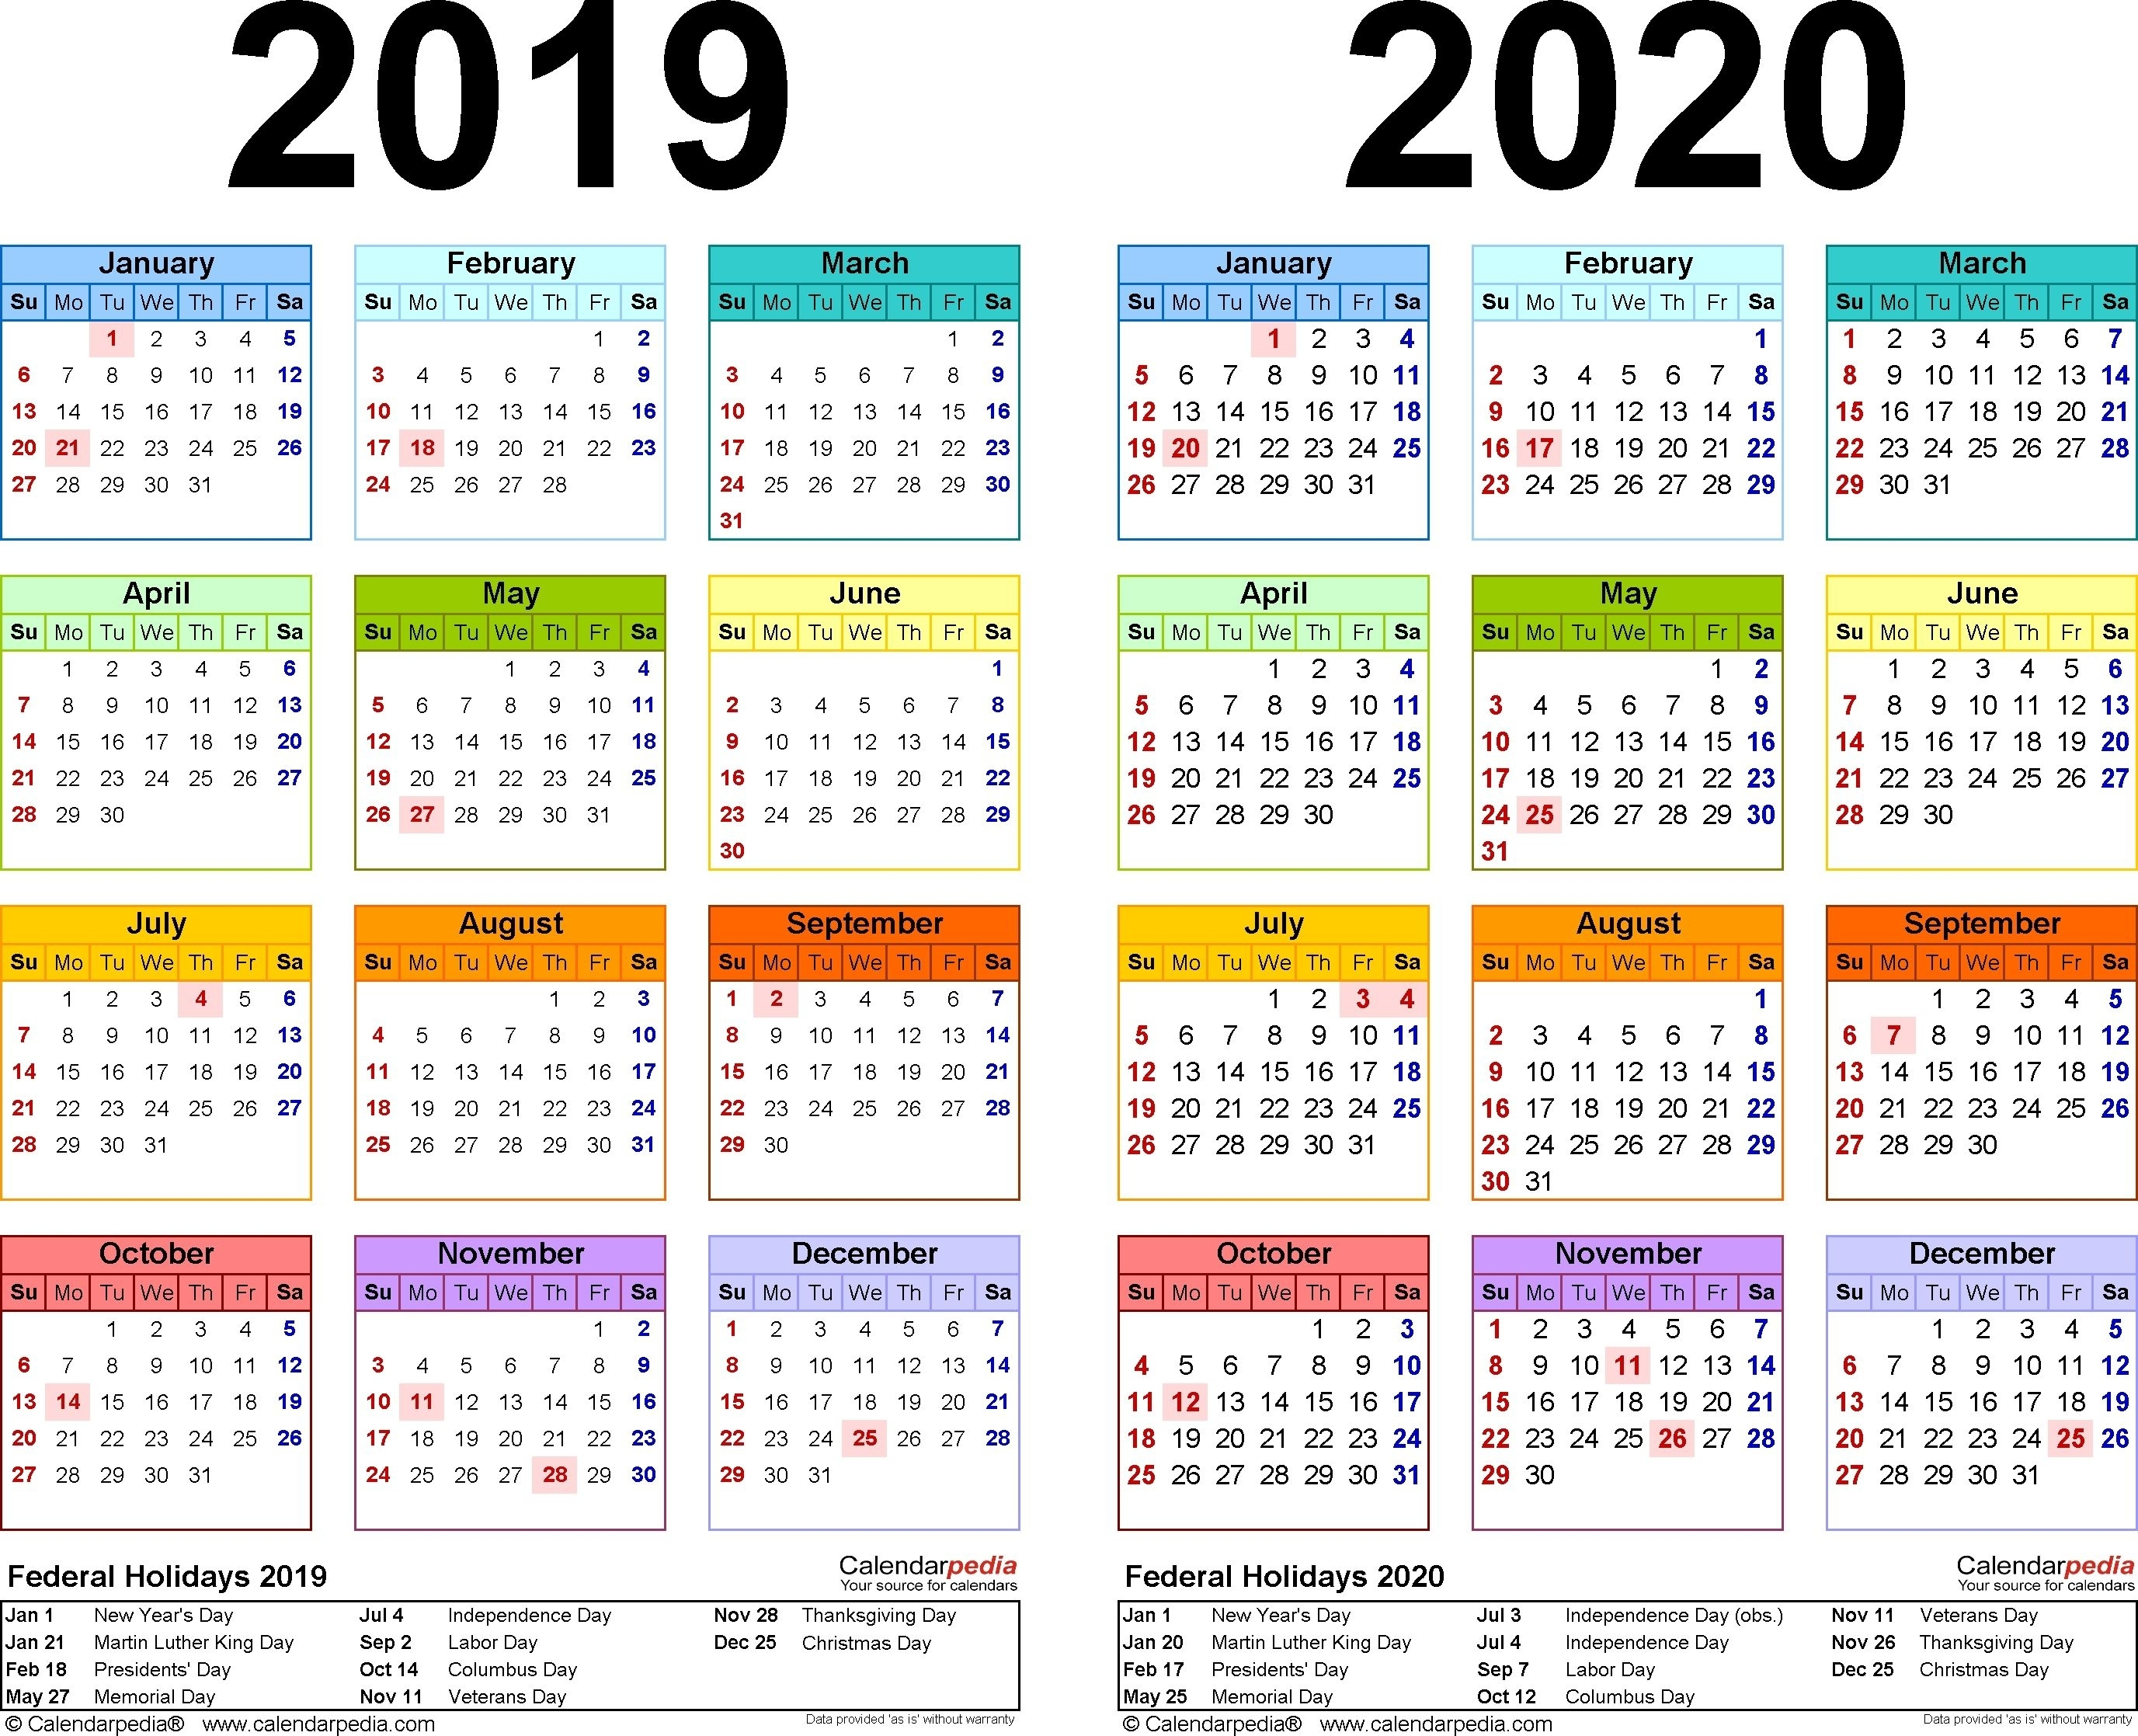 2019-2020 Calendar - Free Printable Two-Year Pdf Calendars throughout Free Printable Pocket Calendar 2020